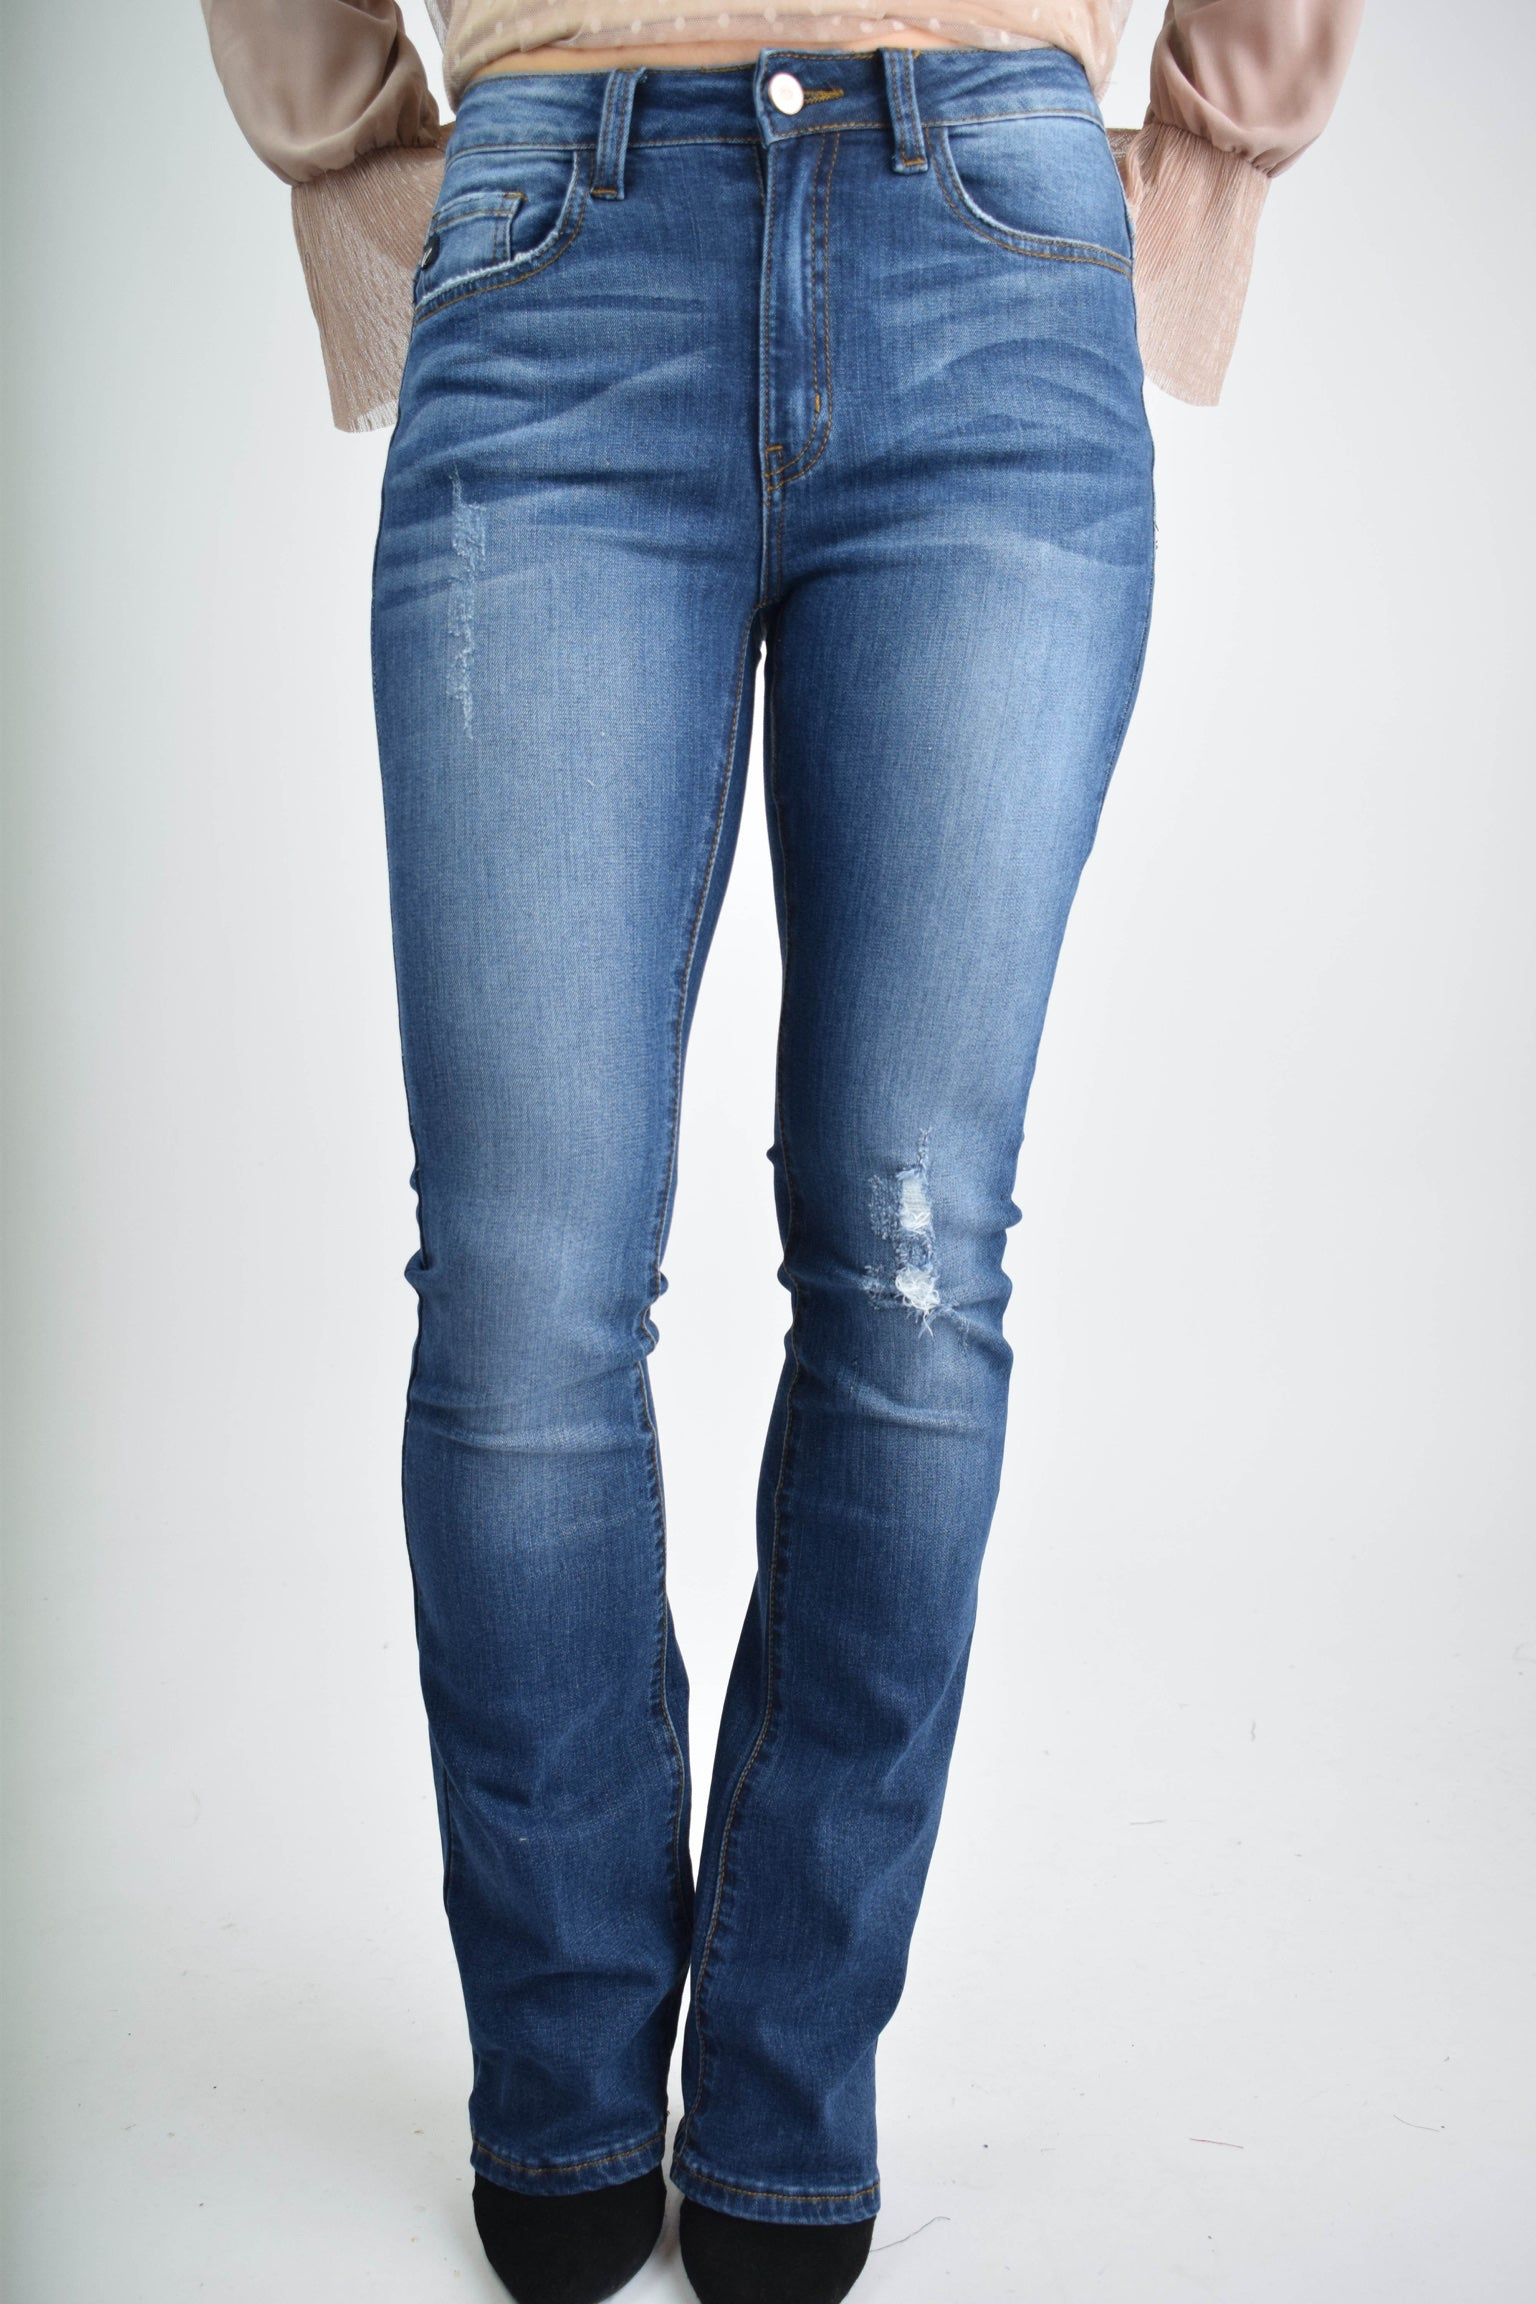 Taste of Paradise Sightly Distressed Bootcut Jeans